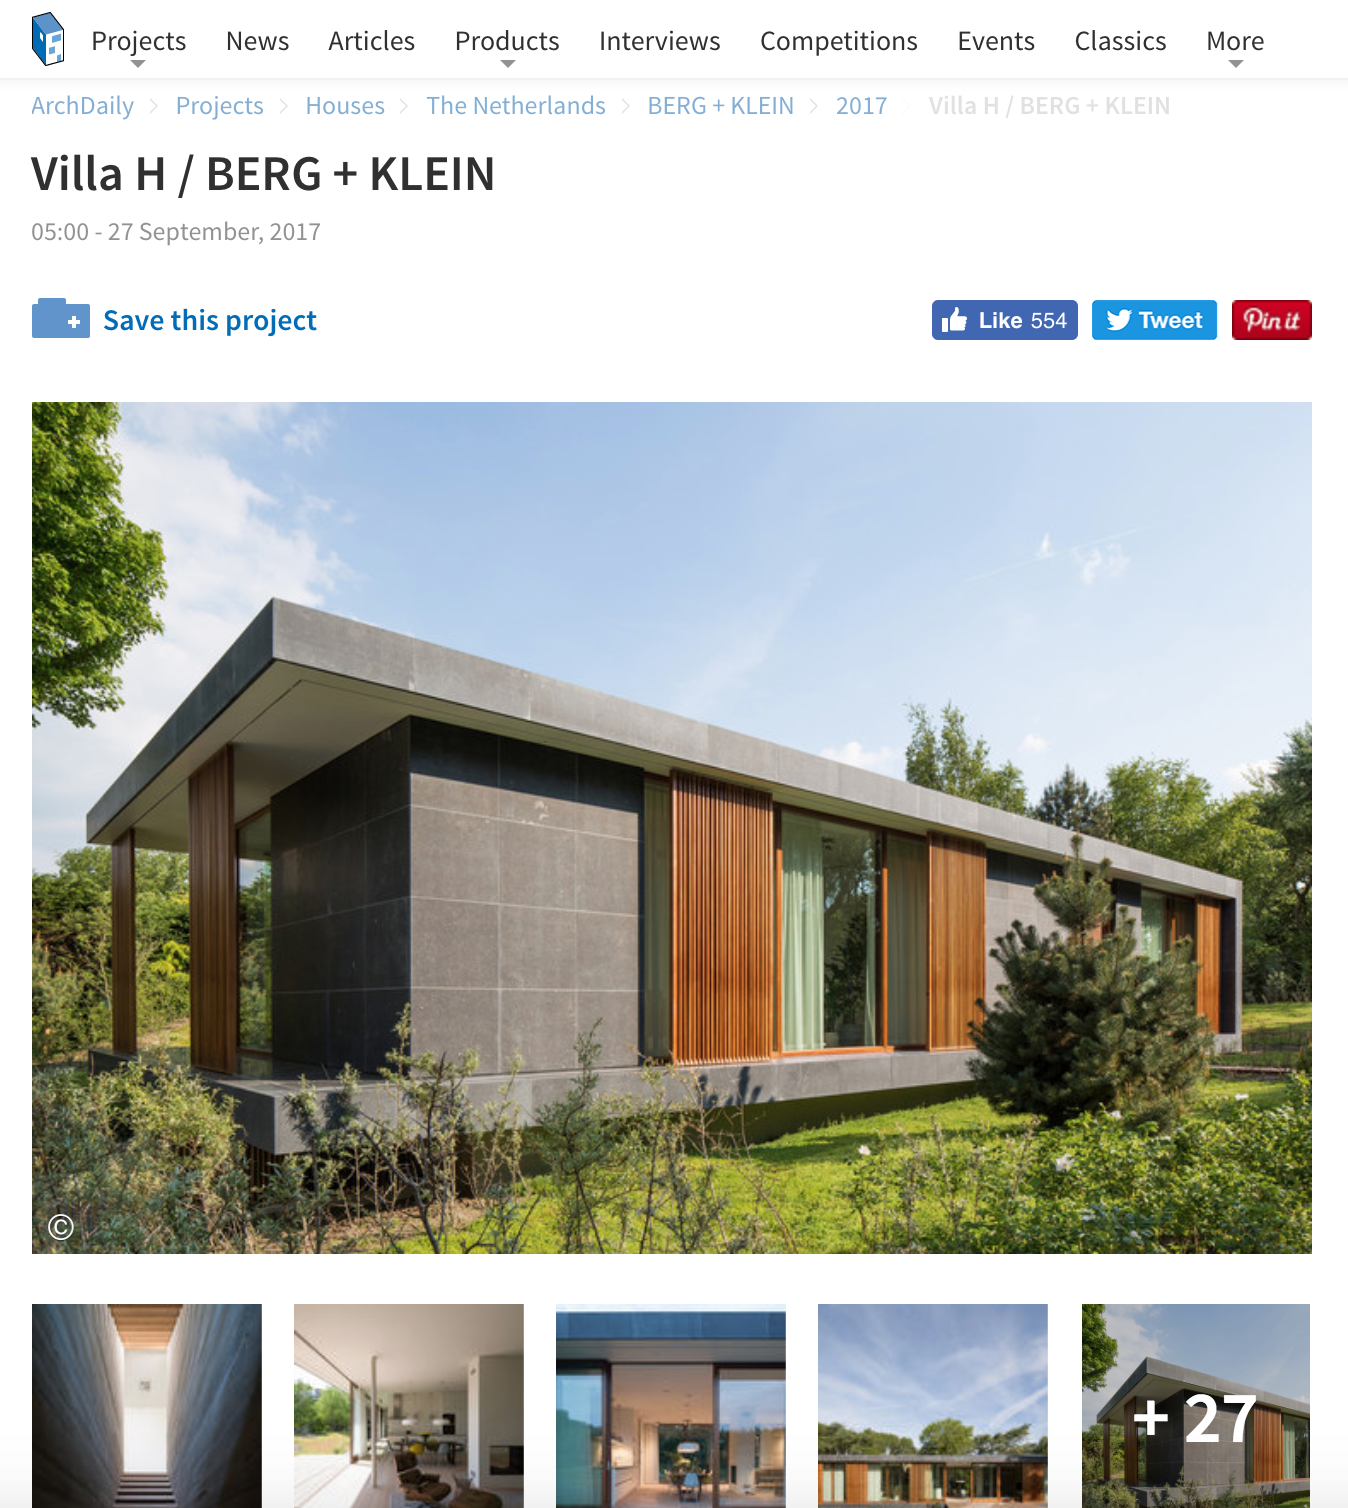 Villa H featured on ArchDaily